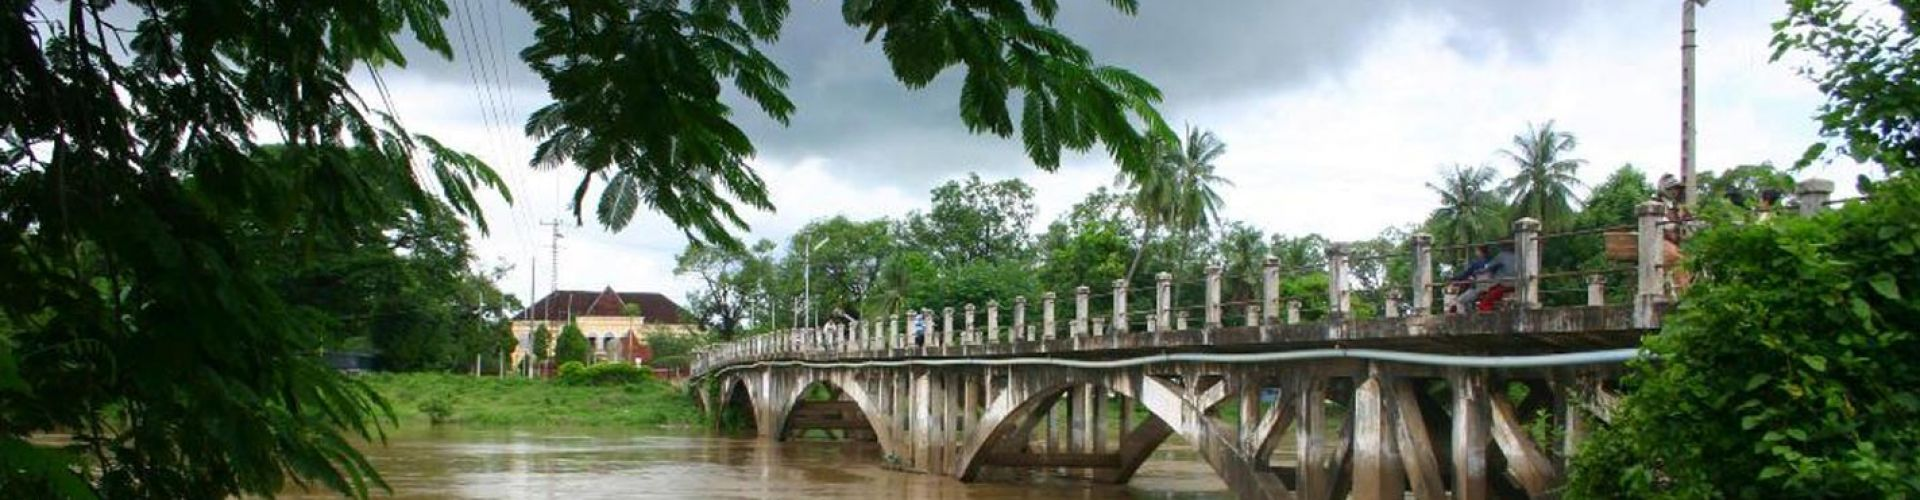 Destinations in Battambang